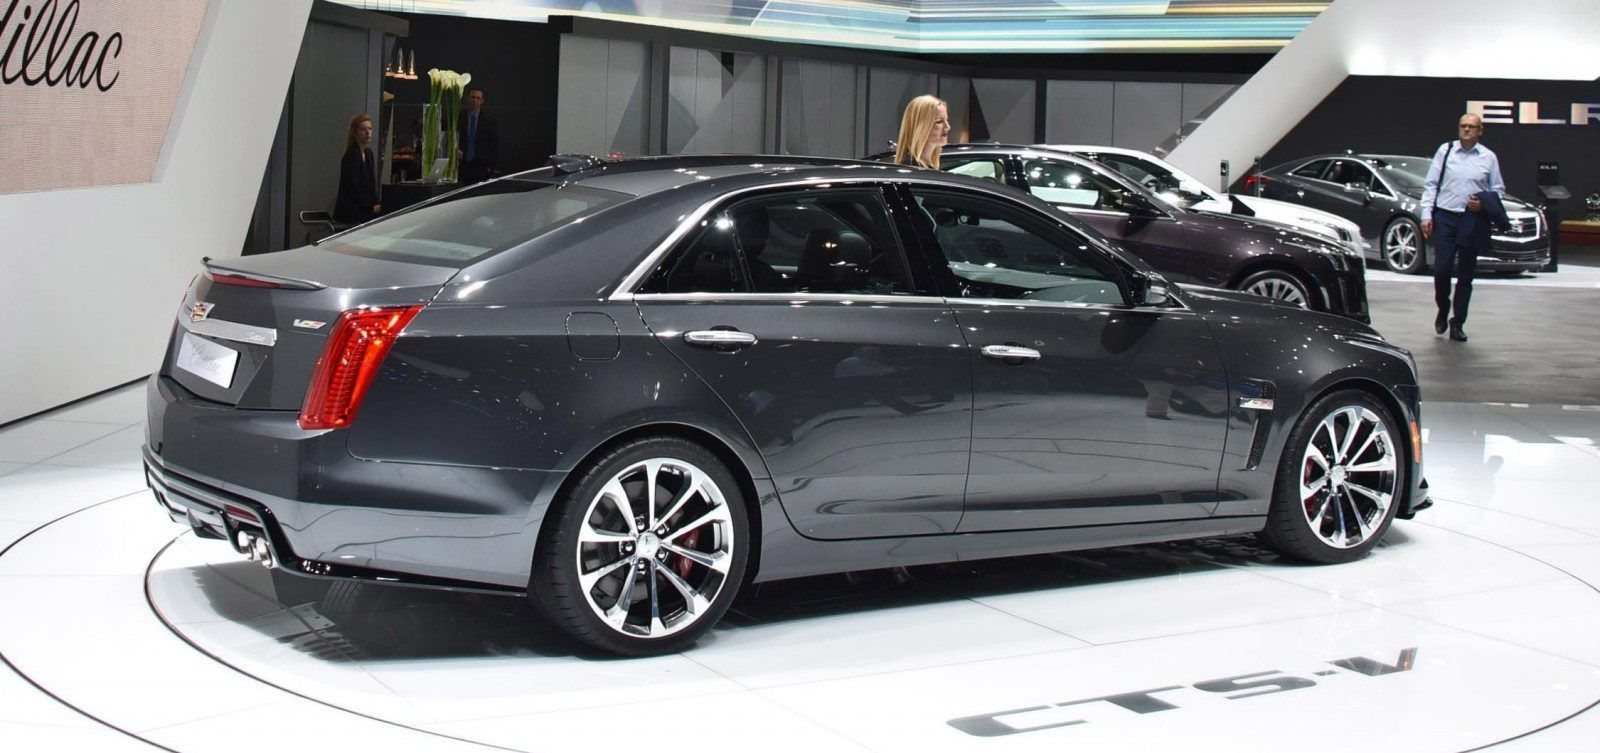 Geneva 2015 Gallery - Cadillac ATS-V and CTS-V + Euro-Spec Escalade Platinum 7